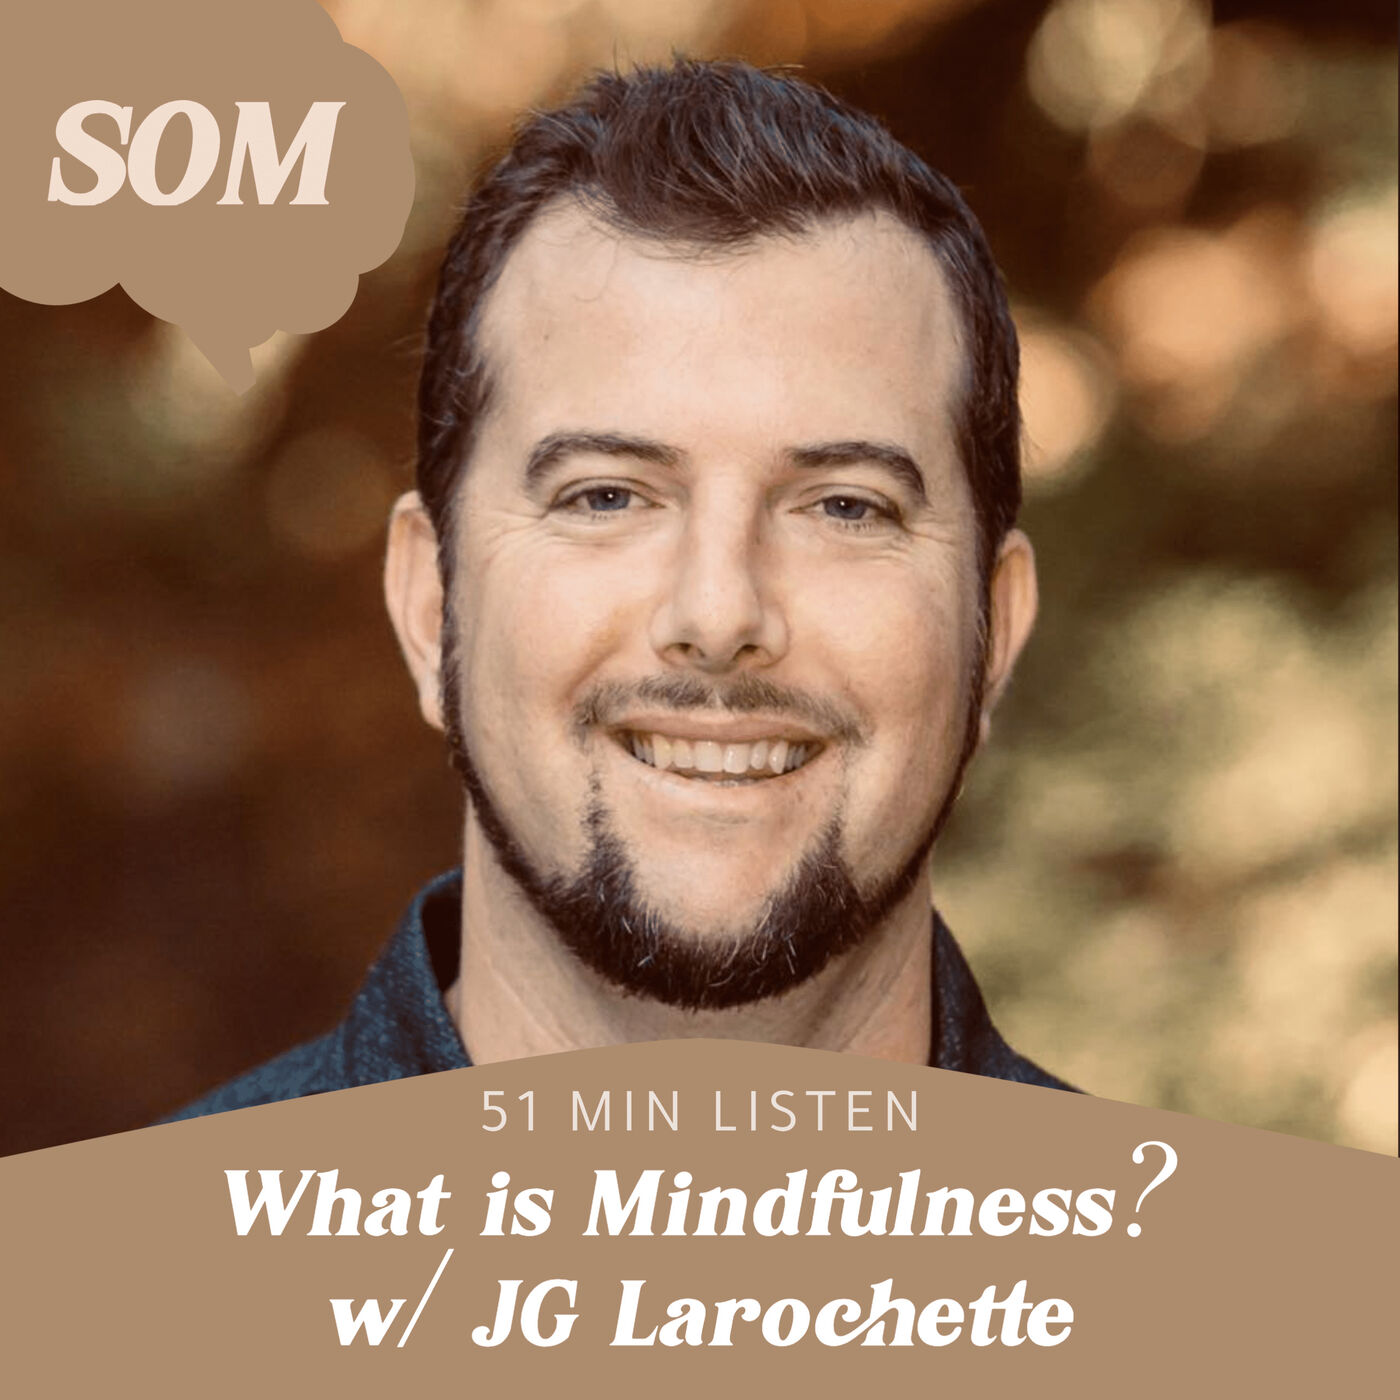 What is Mindfulness? w/ JG Larochette